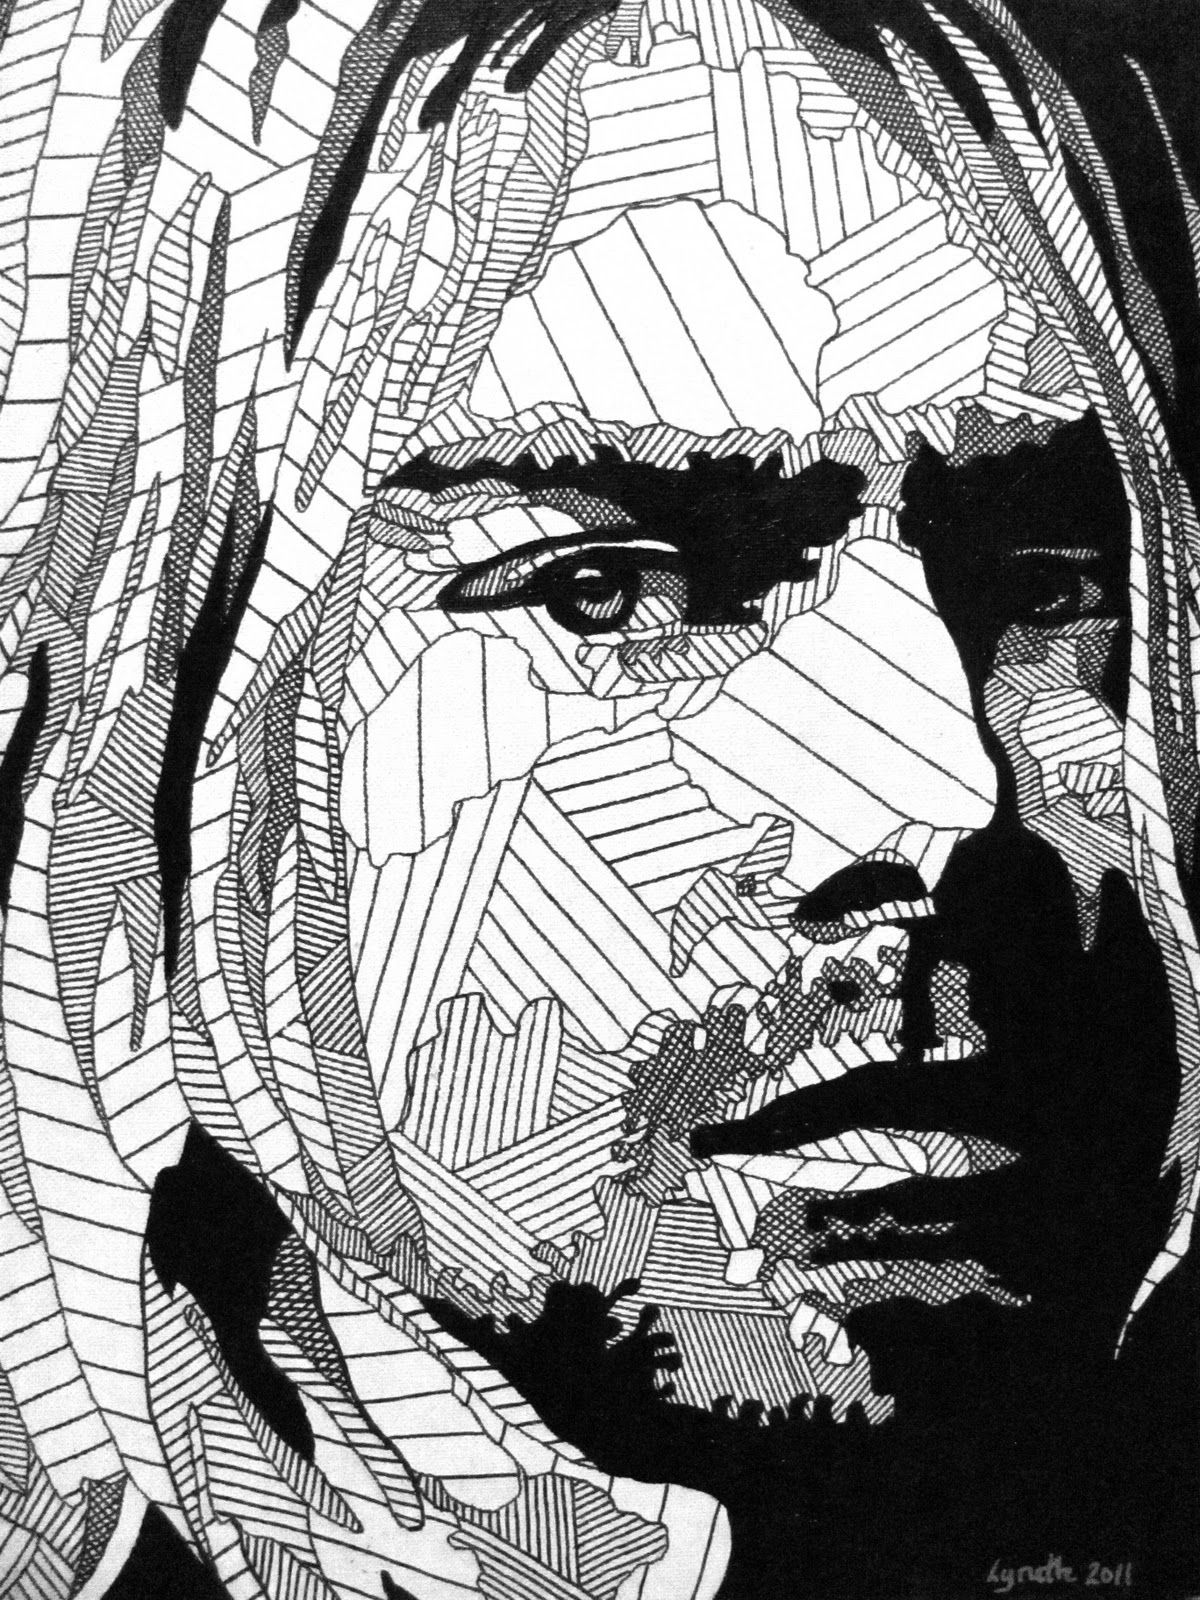 kurt cobain of nirvana 90s coloring page for adults visit